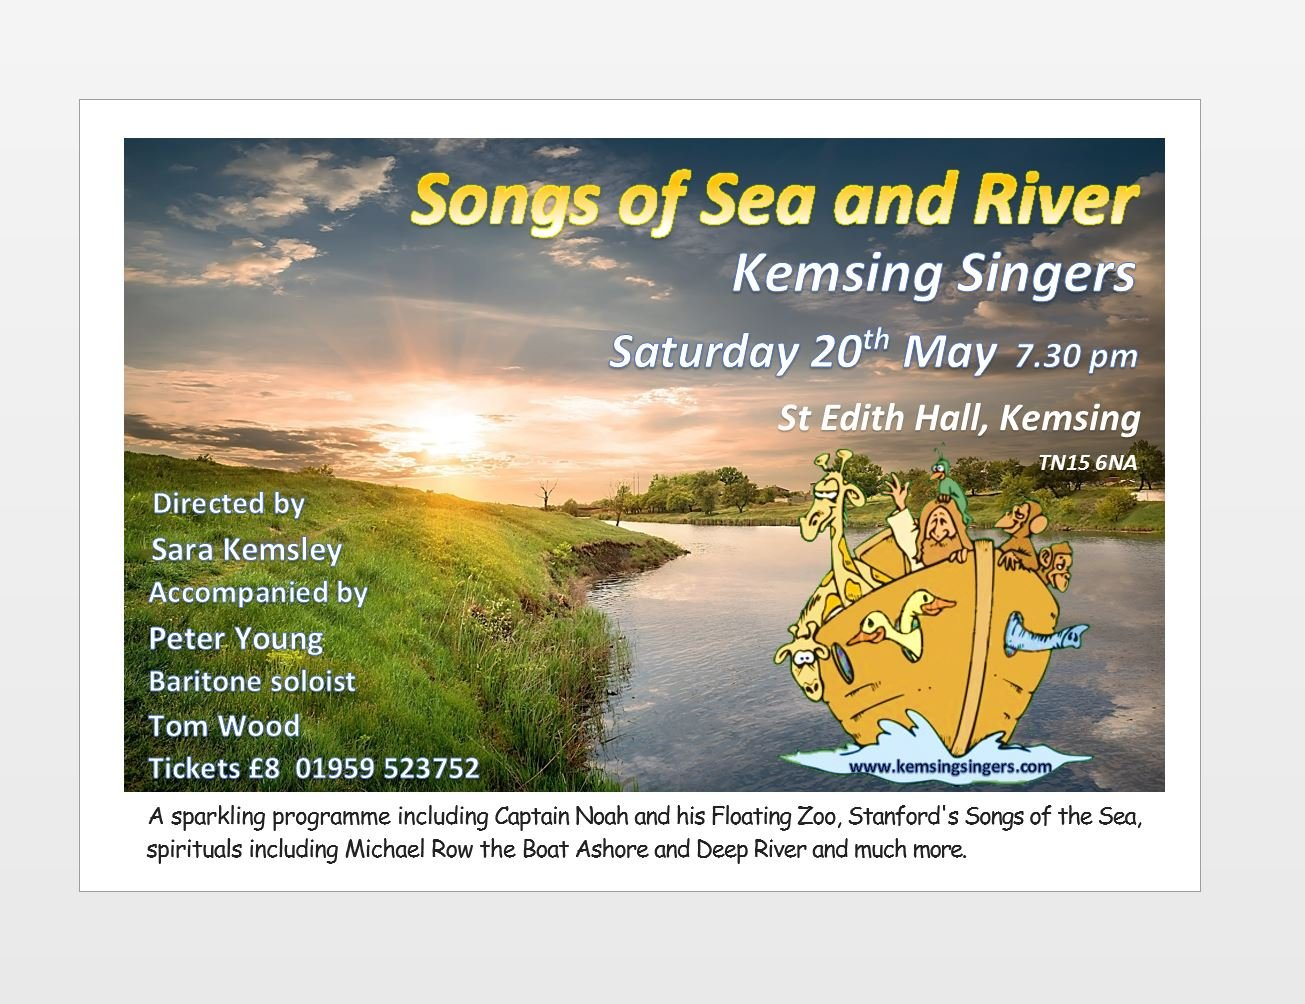 Songs of Sea and River, 20 May 2017